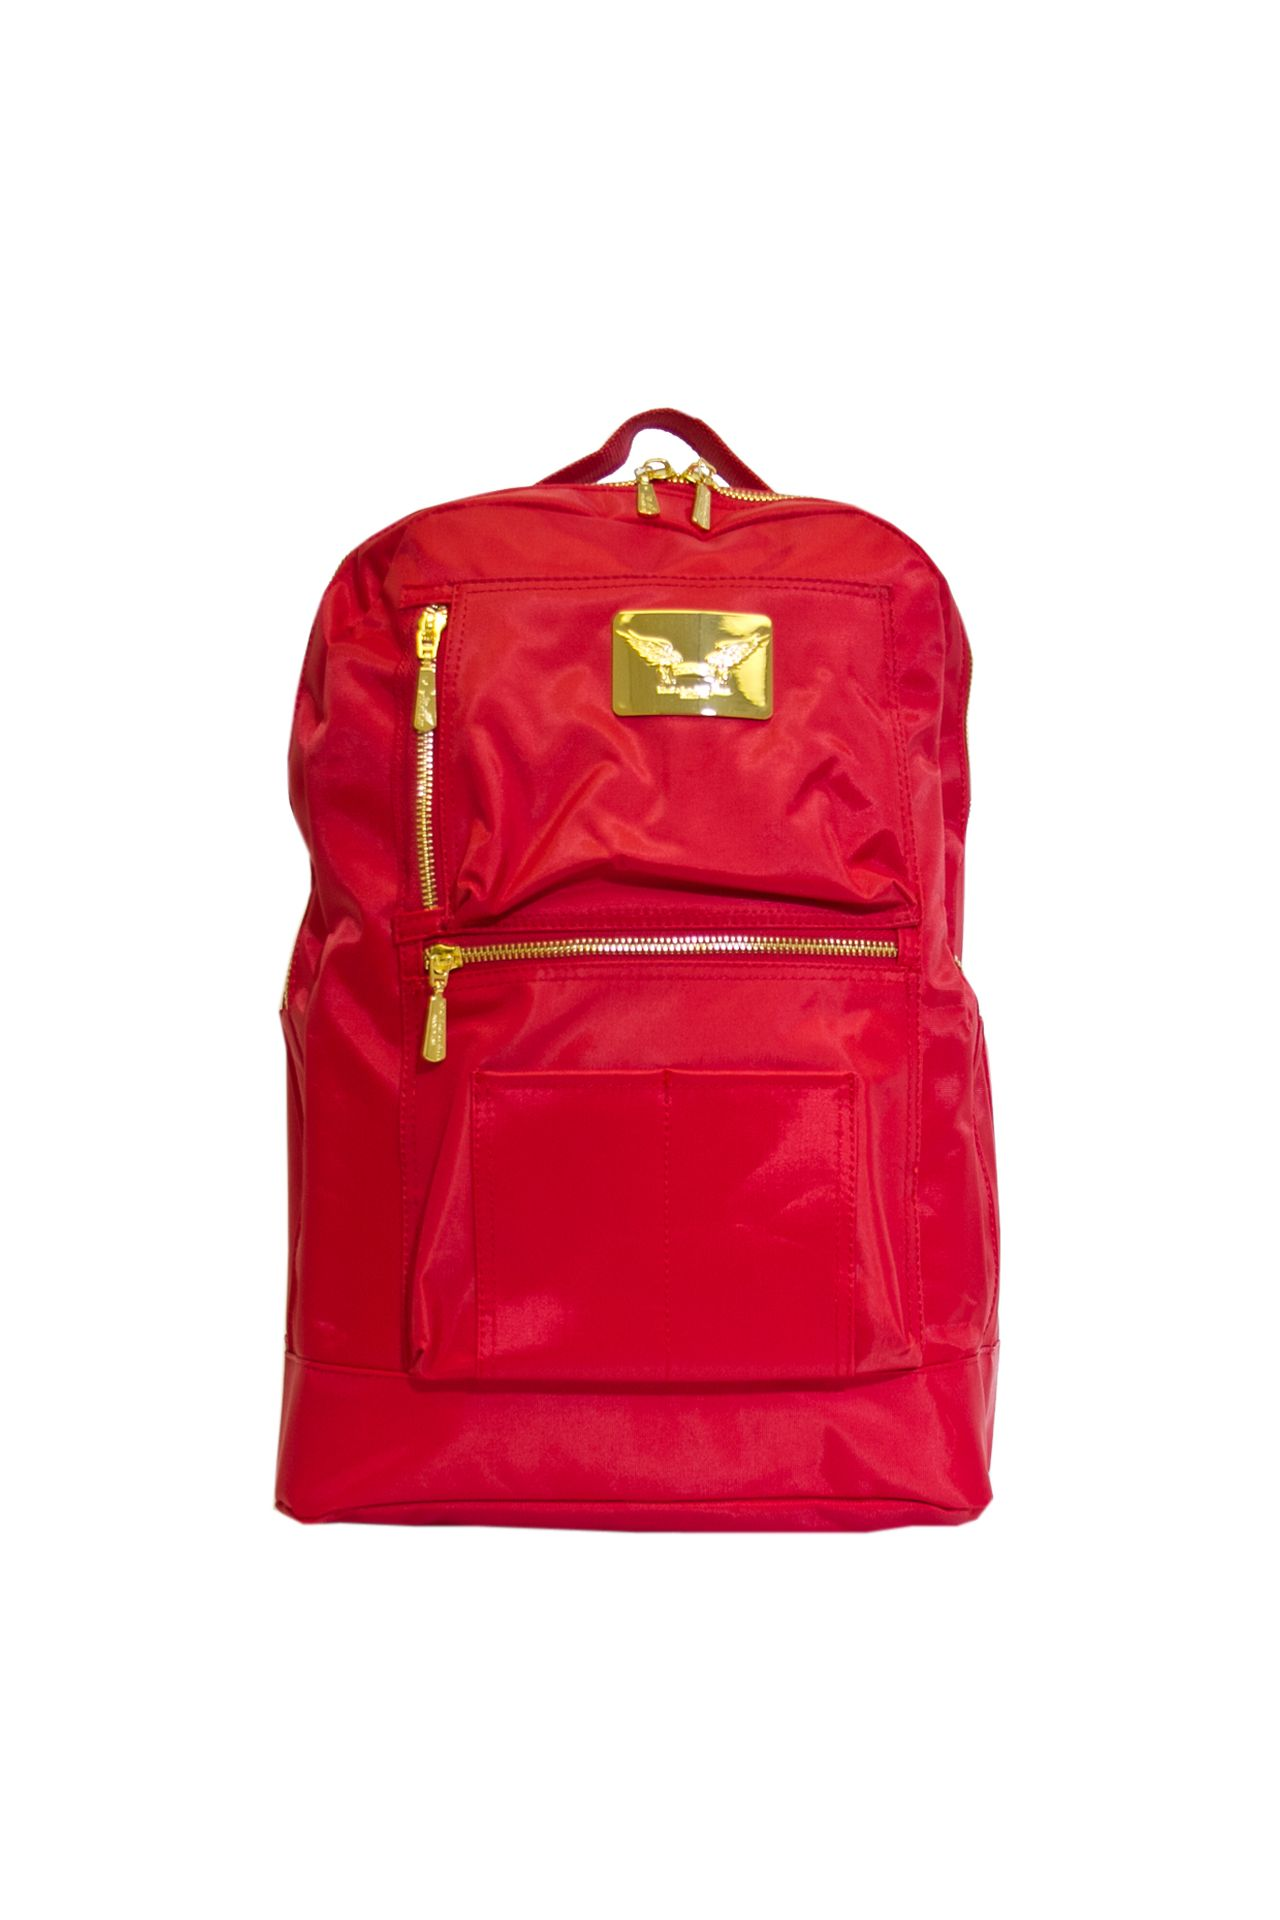 ROBIN'S JEAN NYLON BACKPACK IN RED